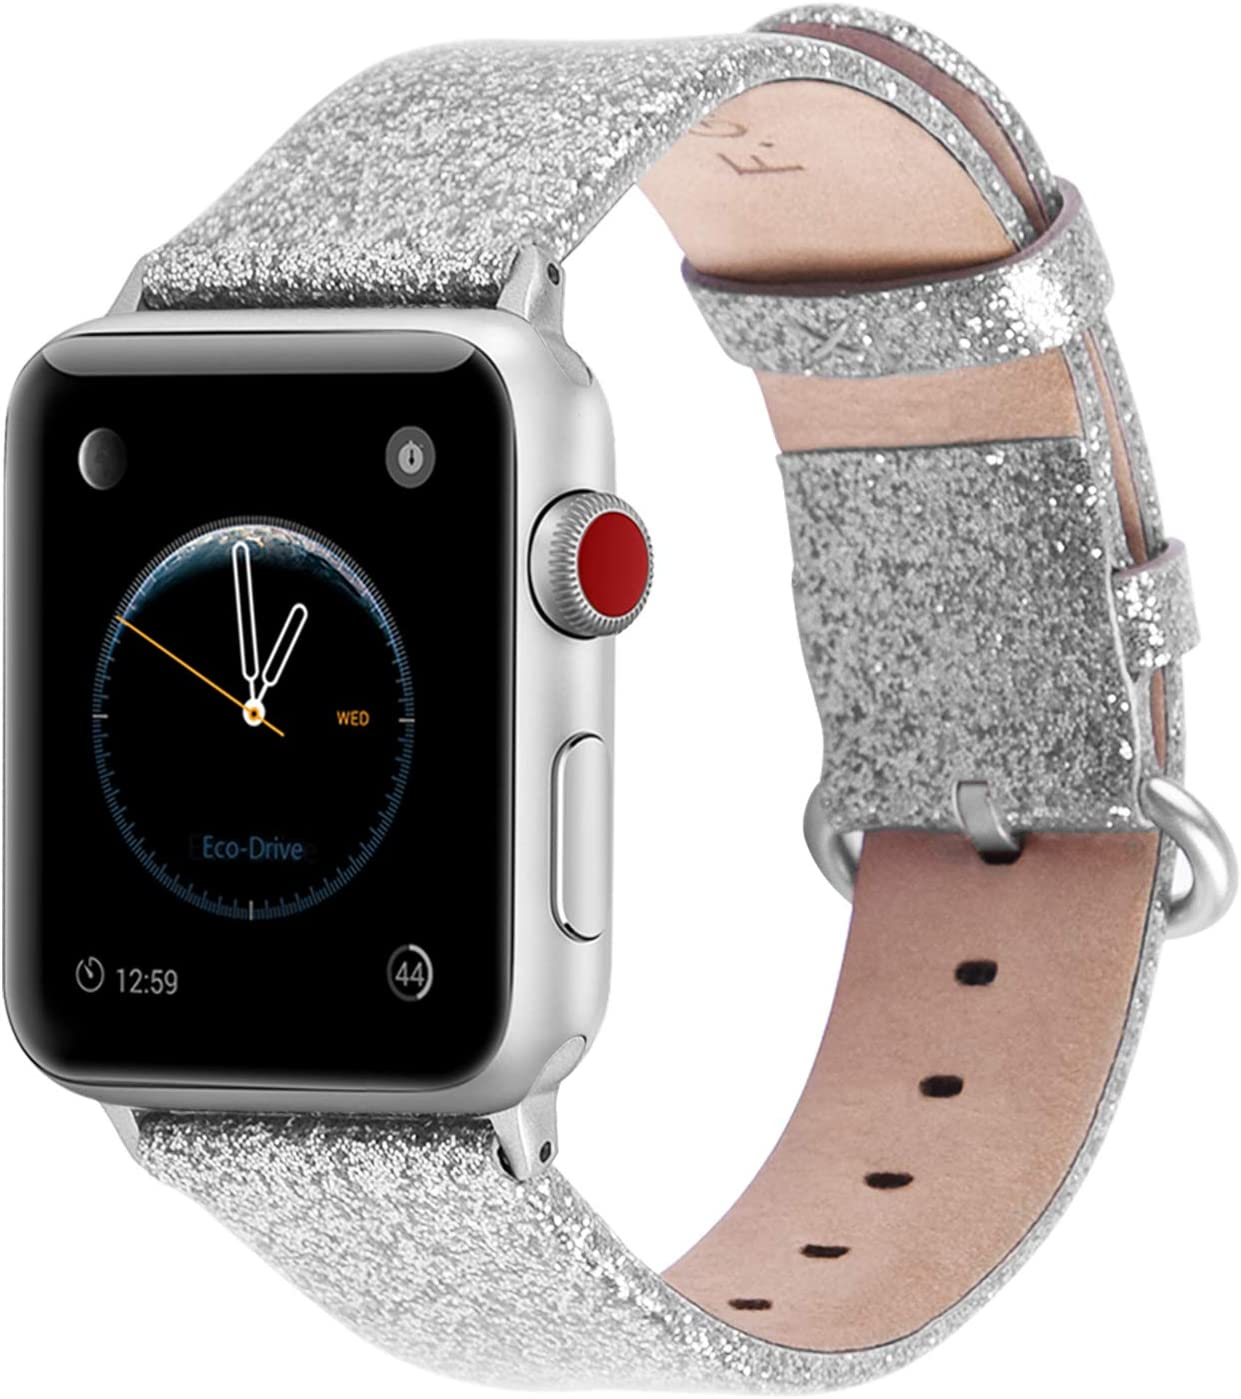 Patent Leather Apple Watch Band 42mm 44mm 40mm 38mm, Fullmosa Stella Women Fashion Bling Apple Watch Band Compatible for Apple Watch SE Series 6/5/4/3/2/1, Silver + Silver Hardware 42mm 44mm